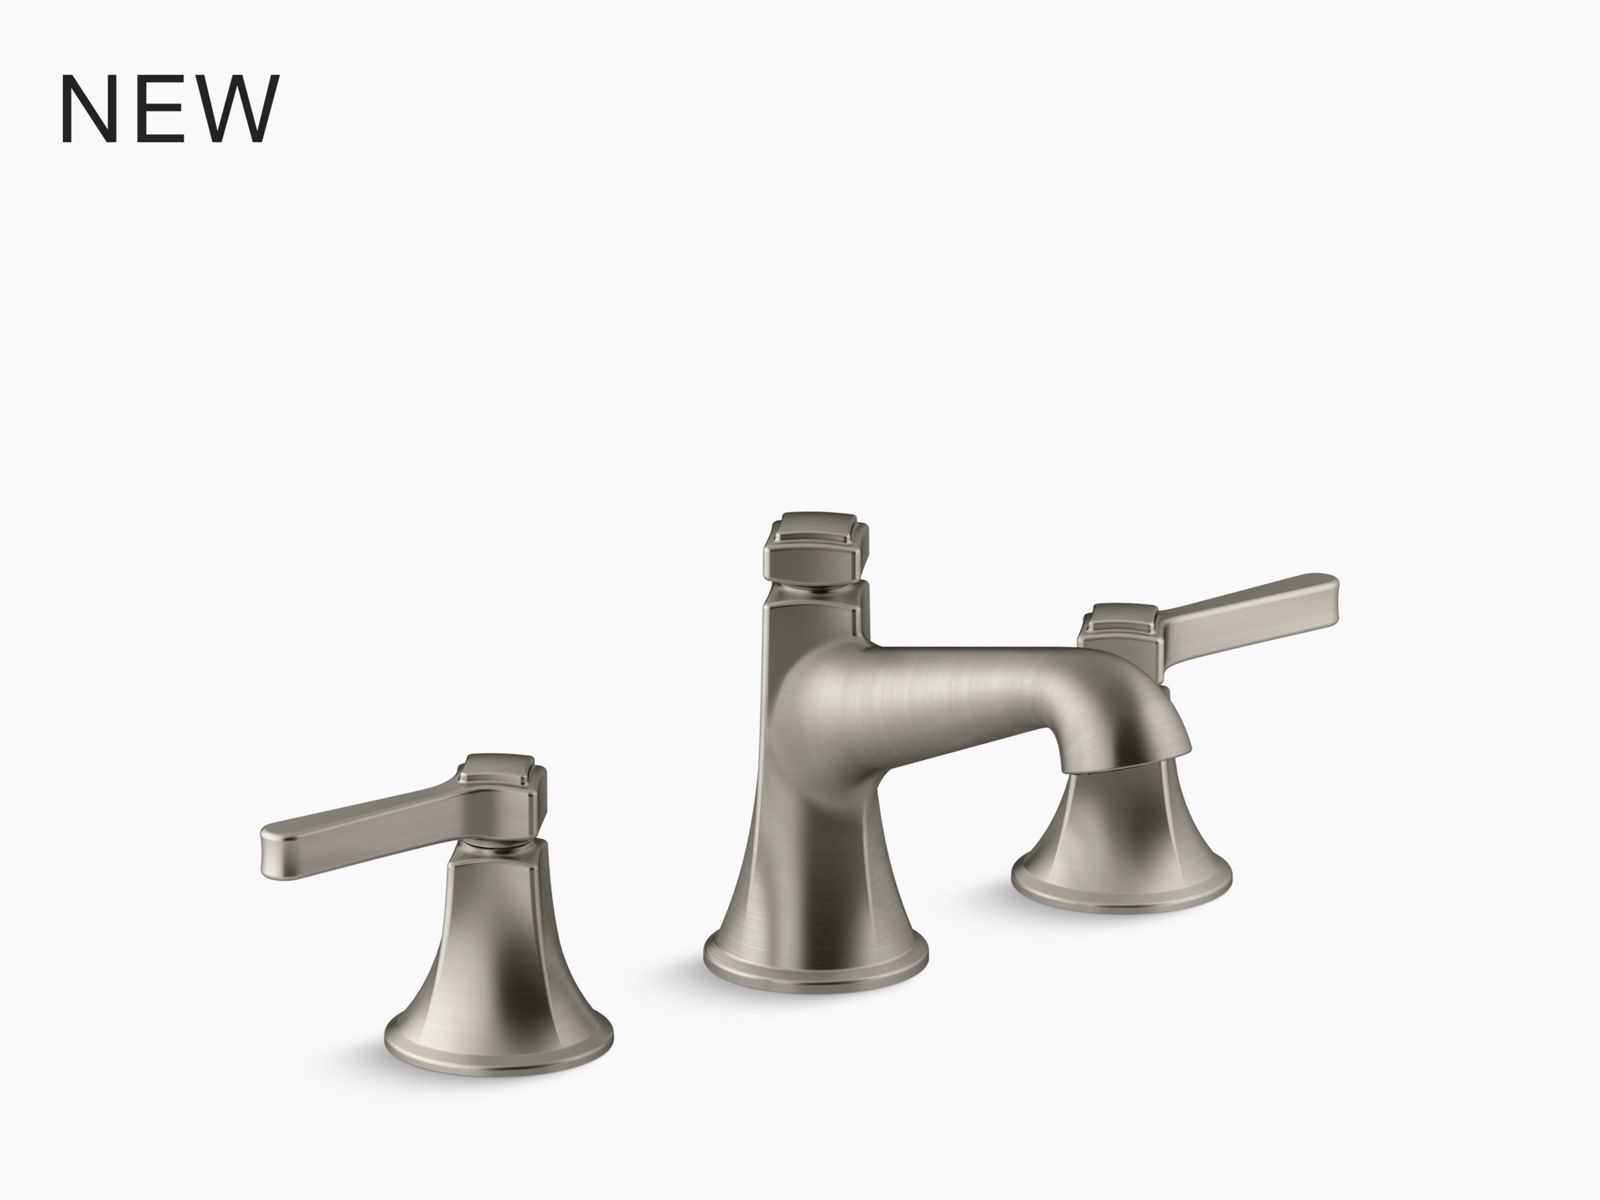 langlade 33 x 22 x 9 5 8 top mount smart divide double equal kitchen sink with one faucet hole and one accessory hole